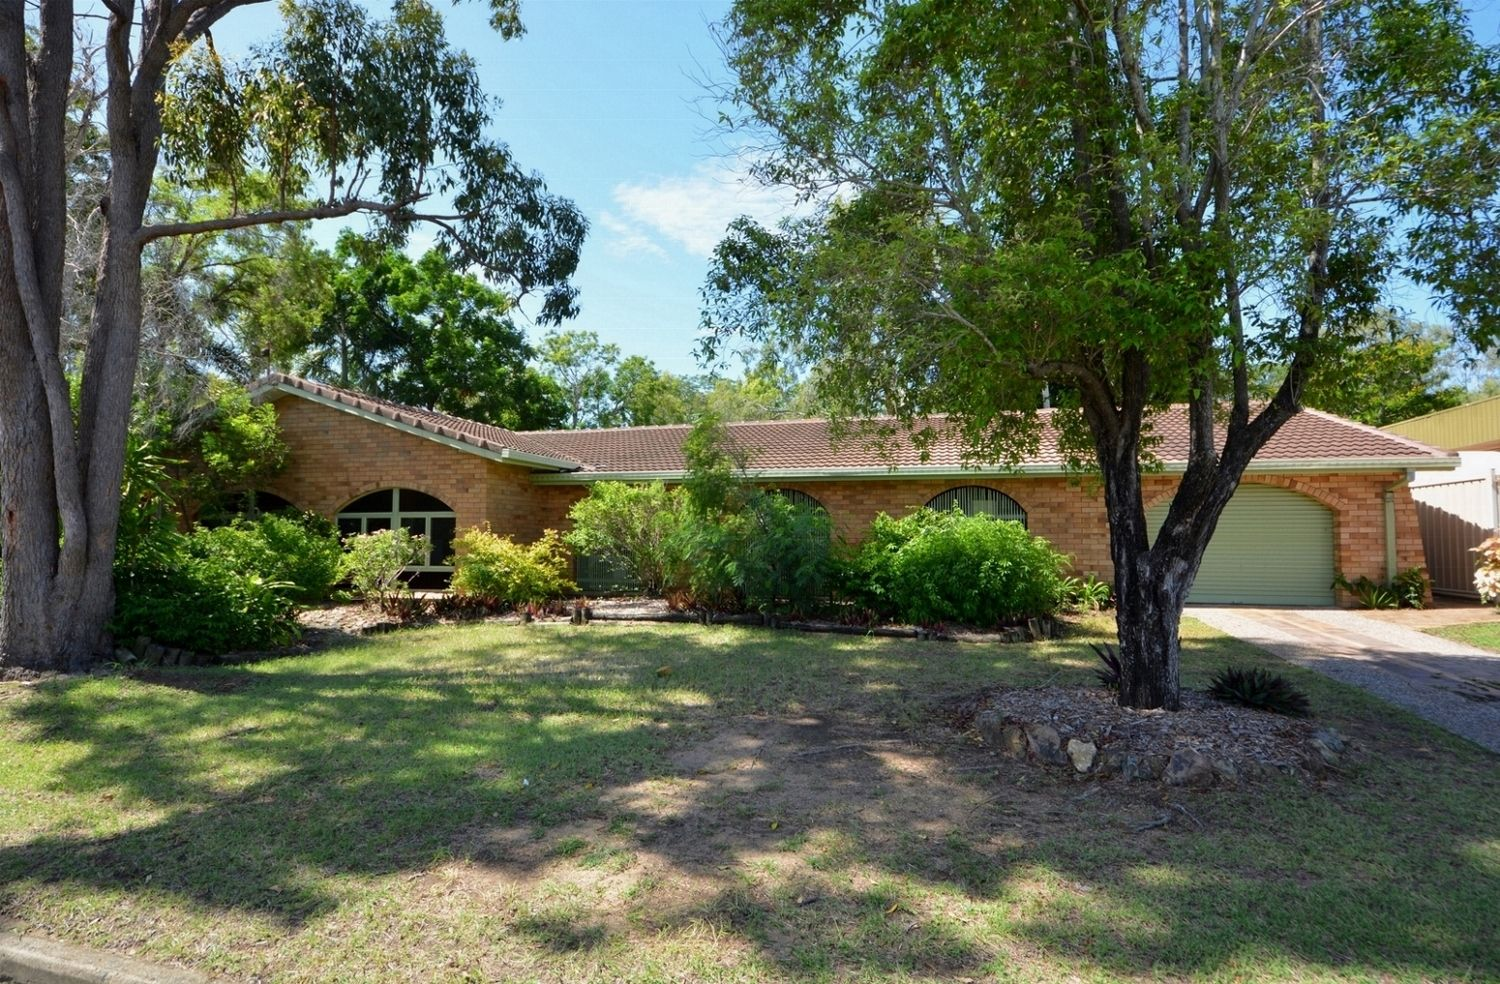 127 Mitchell Street, Frenchville QLD 4701, Image 0